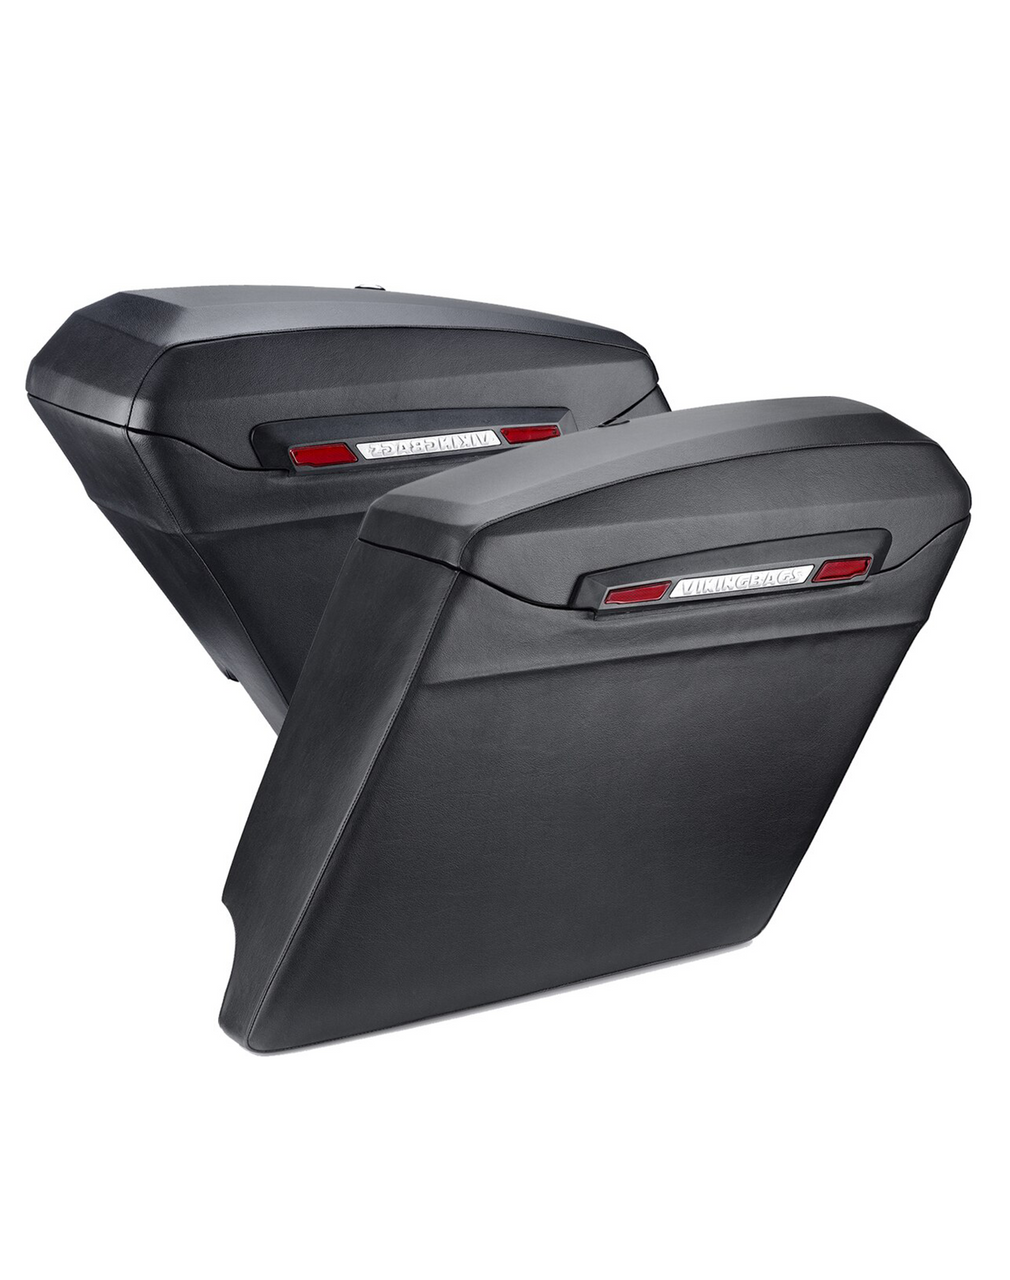 Viking Touring Bagger Leather Covered Extra Large Stretched Saddlebags For Harley Road King Both Bags View